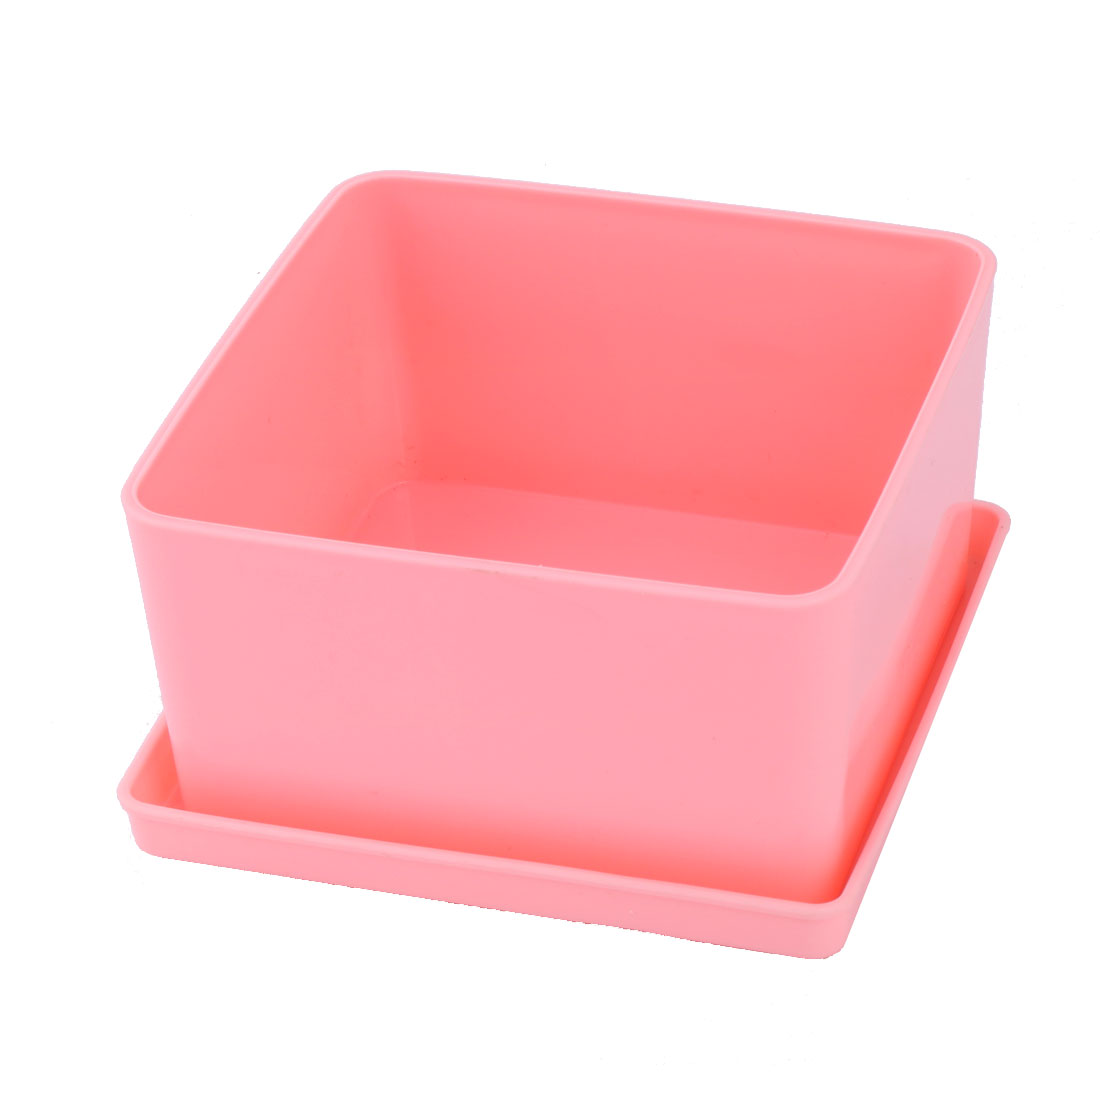 Home Desktop Ornament Plastic Flower Grass Plant Pot Tray Holder Container Pink